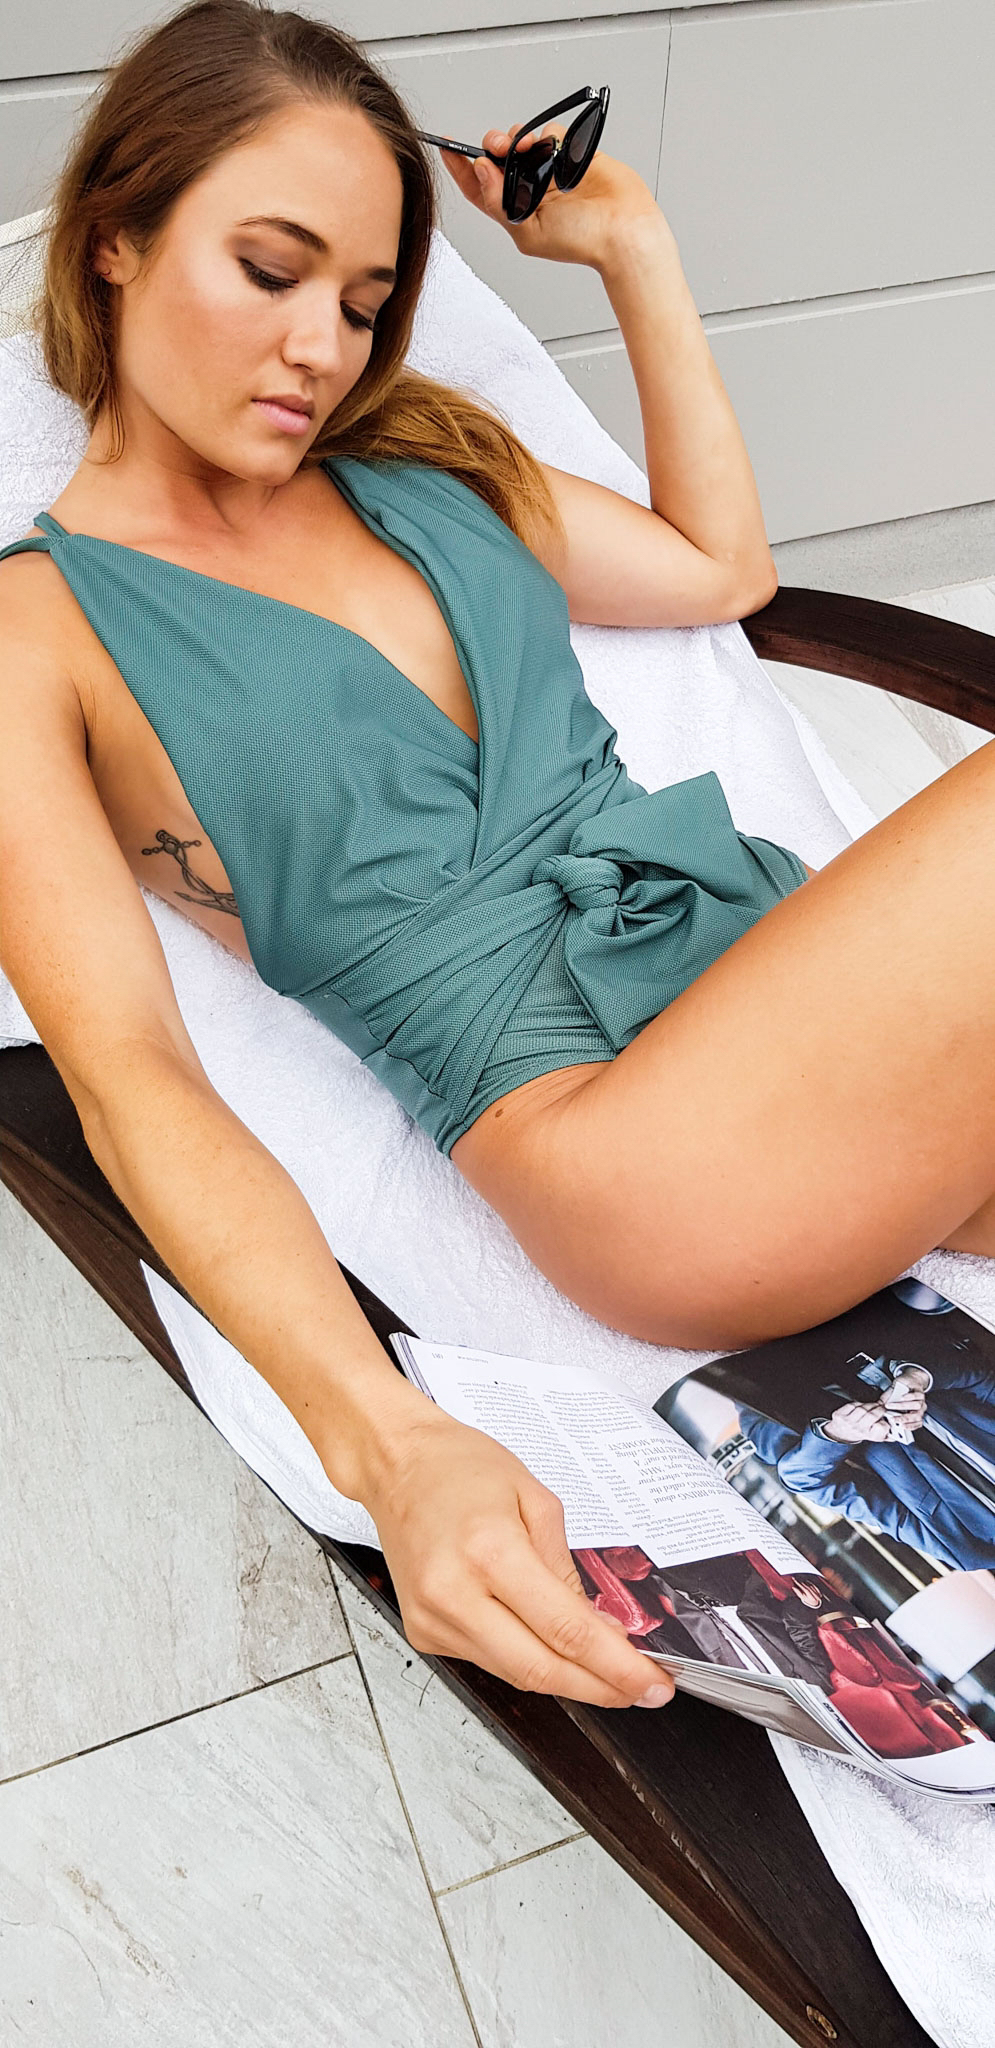 Teal retro inspired swimsuit by Lazy Girl Lingerie